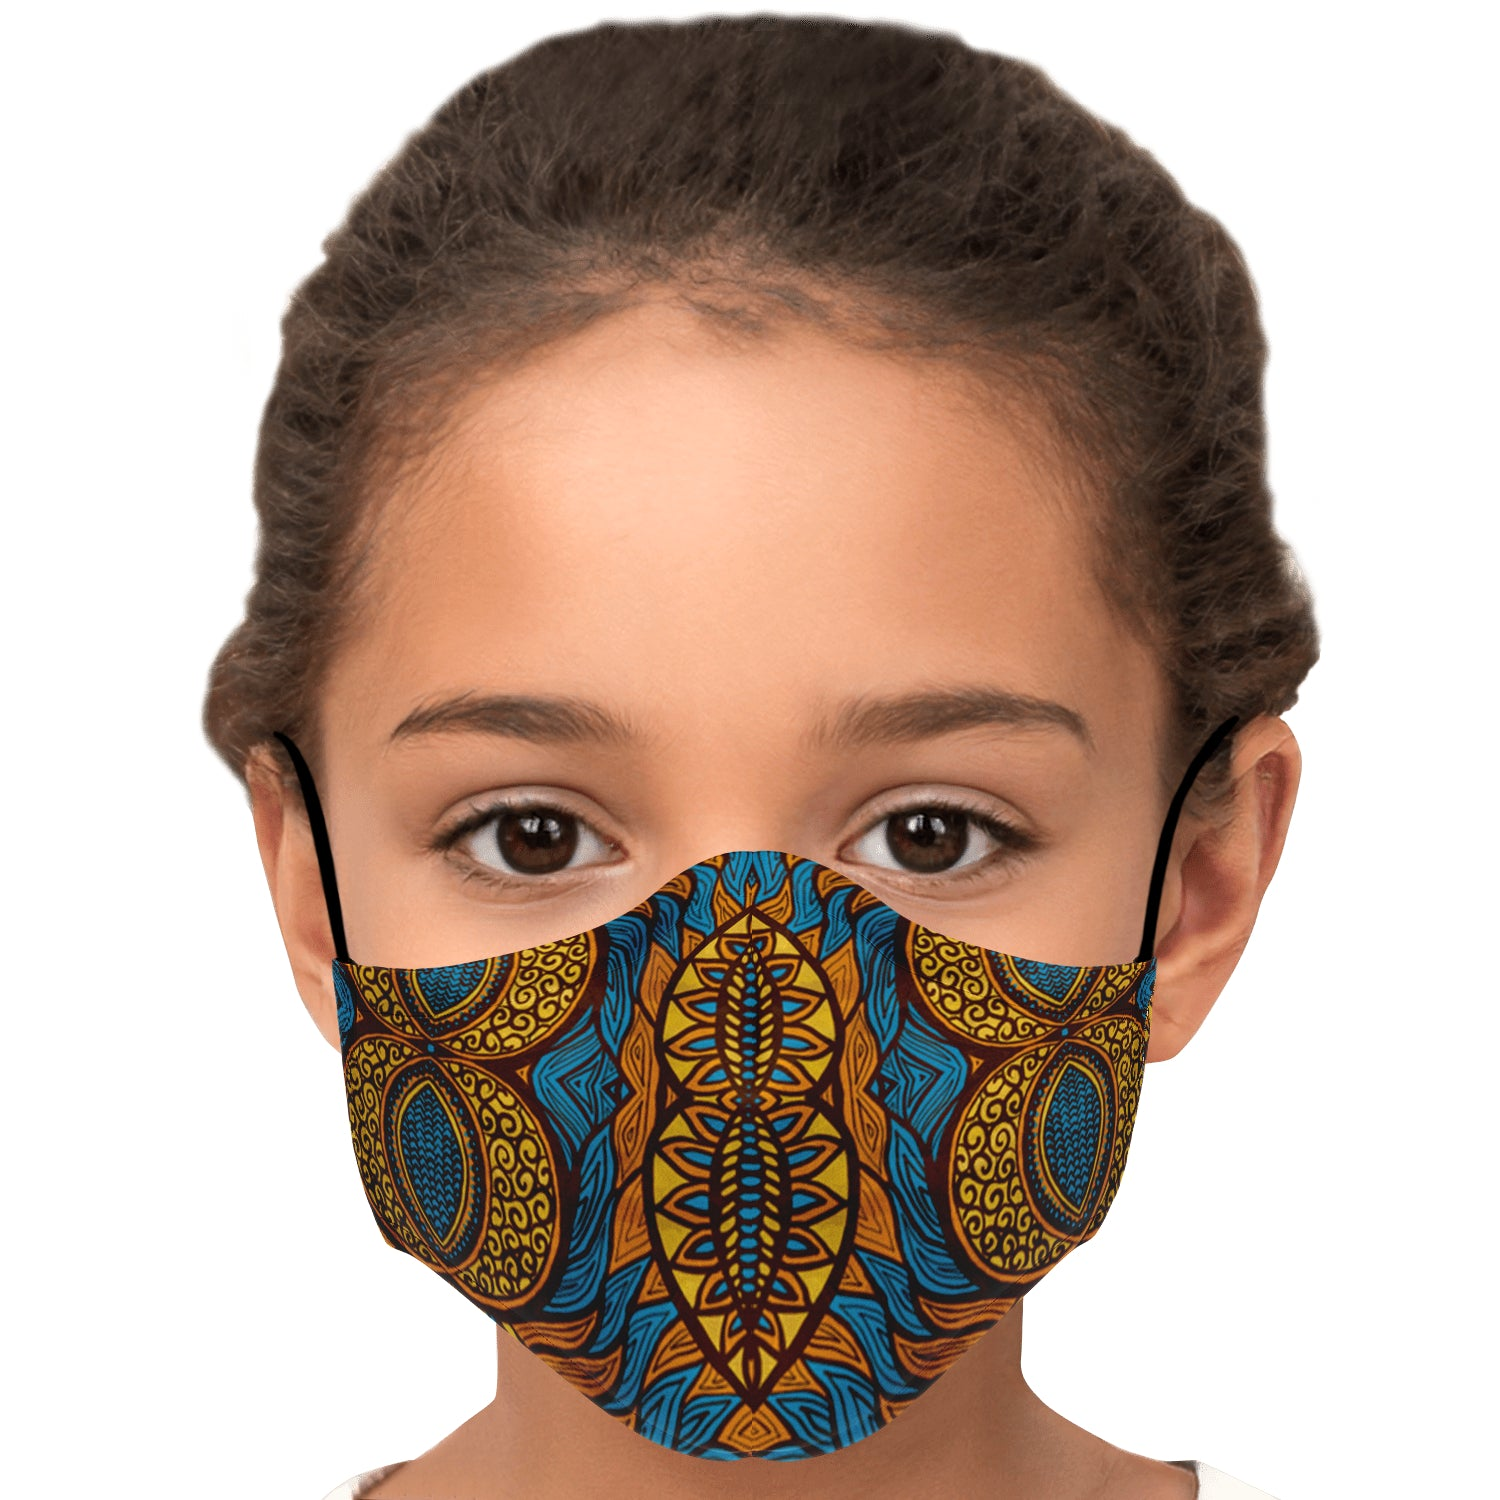 Allno Africa's Coast Face Mask